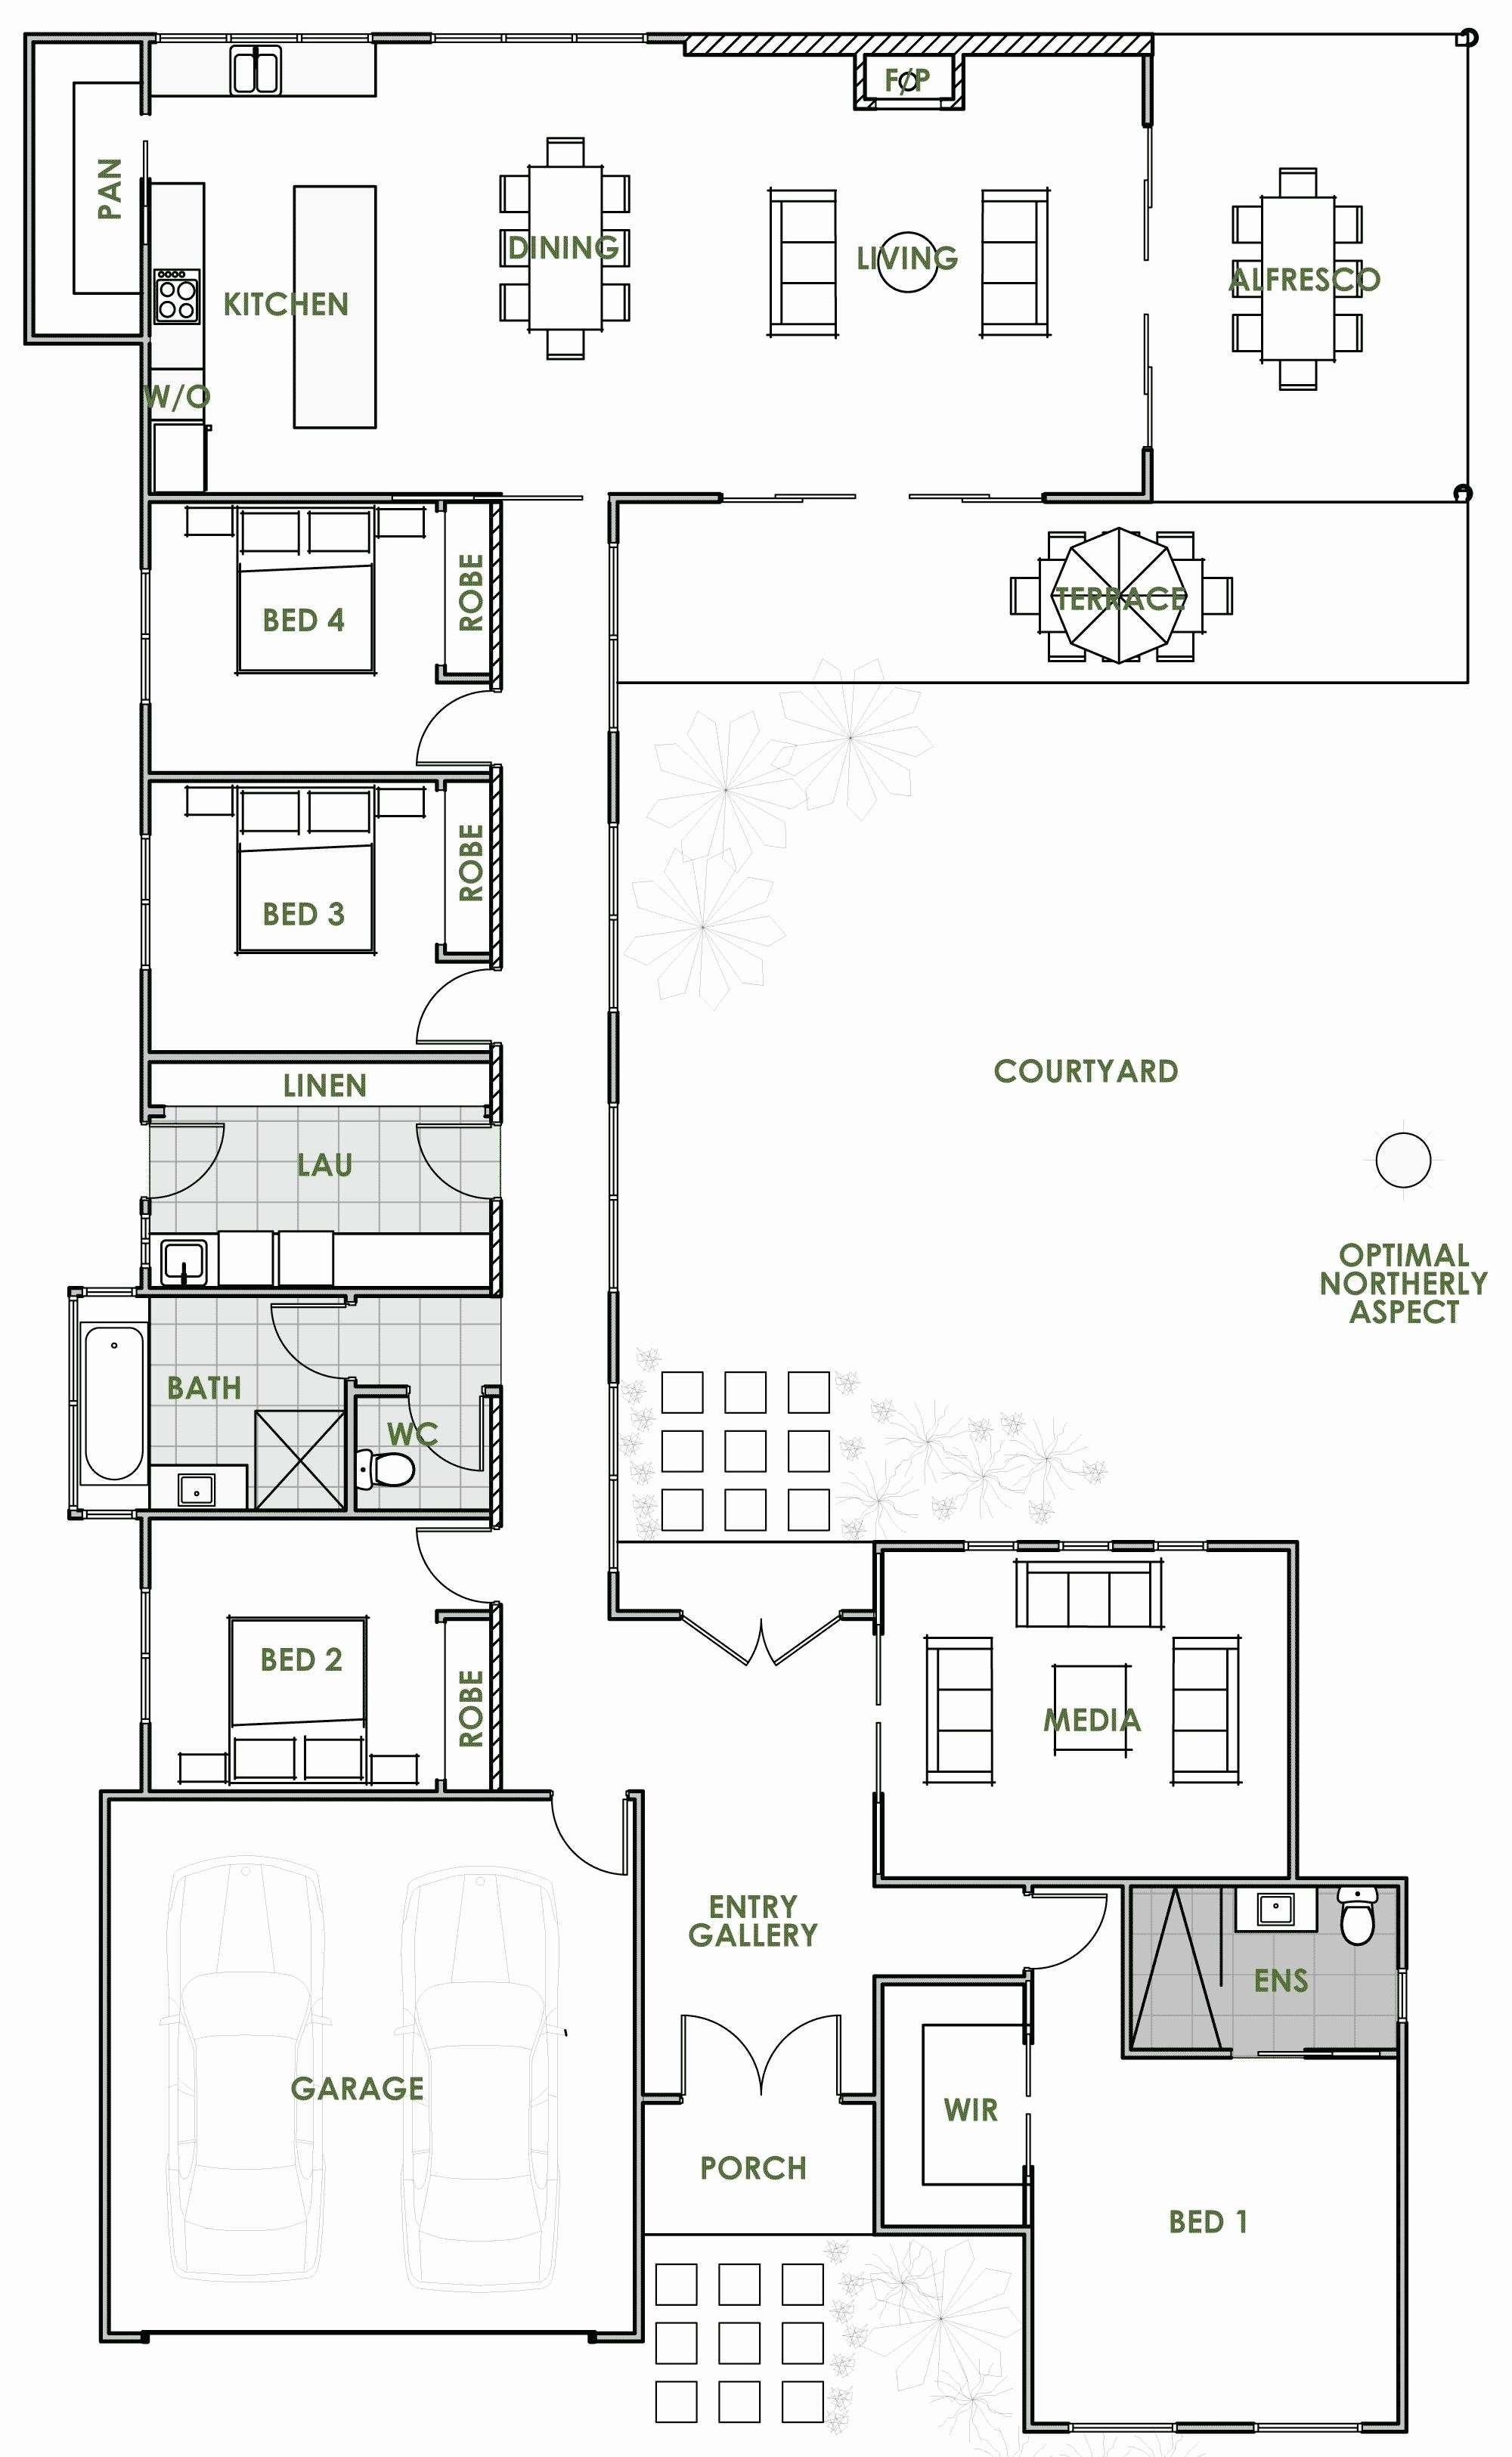 Image Result For Straw Bale House With Courtyard U Shaped House Plans Open Floor House Plans House Plans Australia